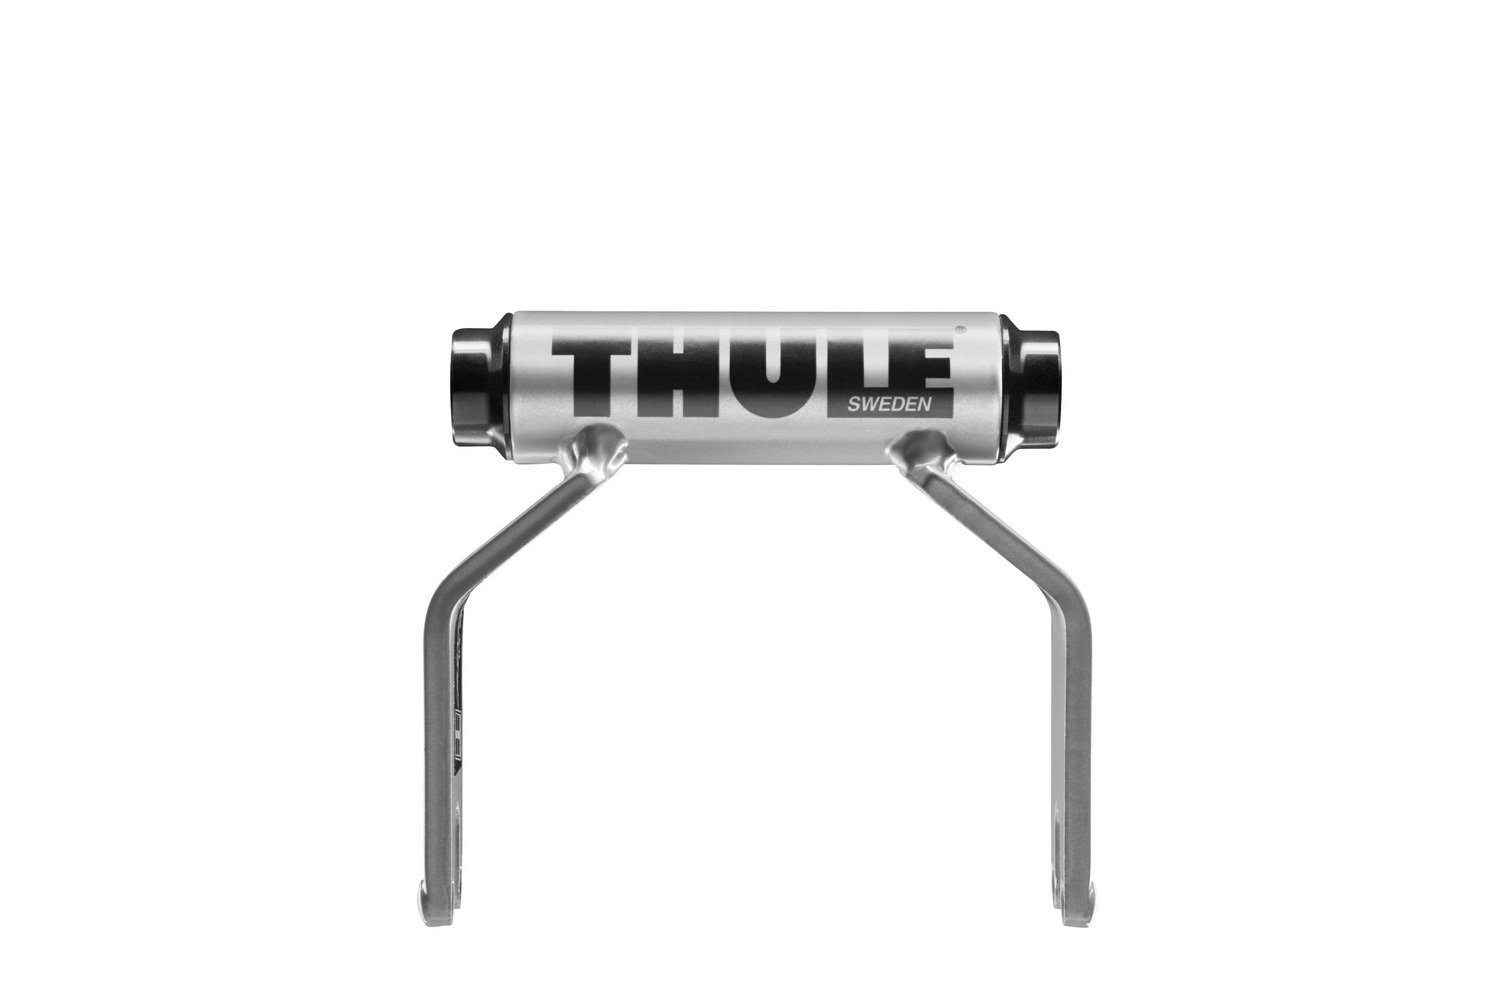 Thule 530L Thru Axle Adapter (Cannondale Lefty)